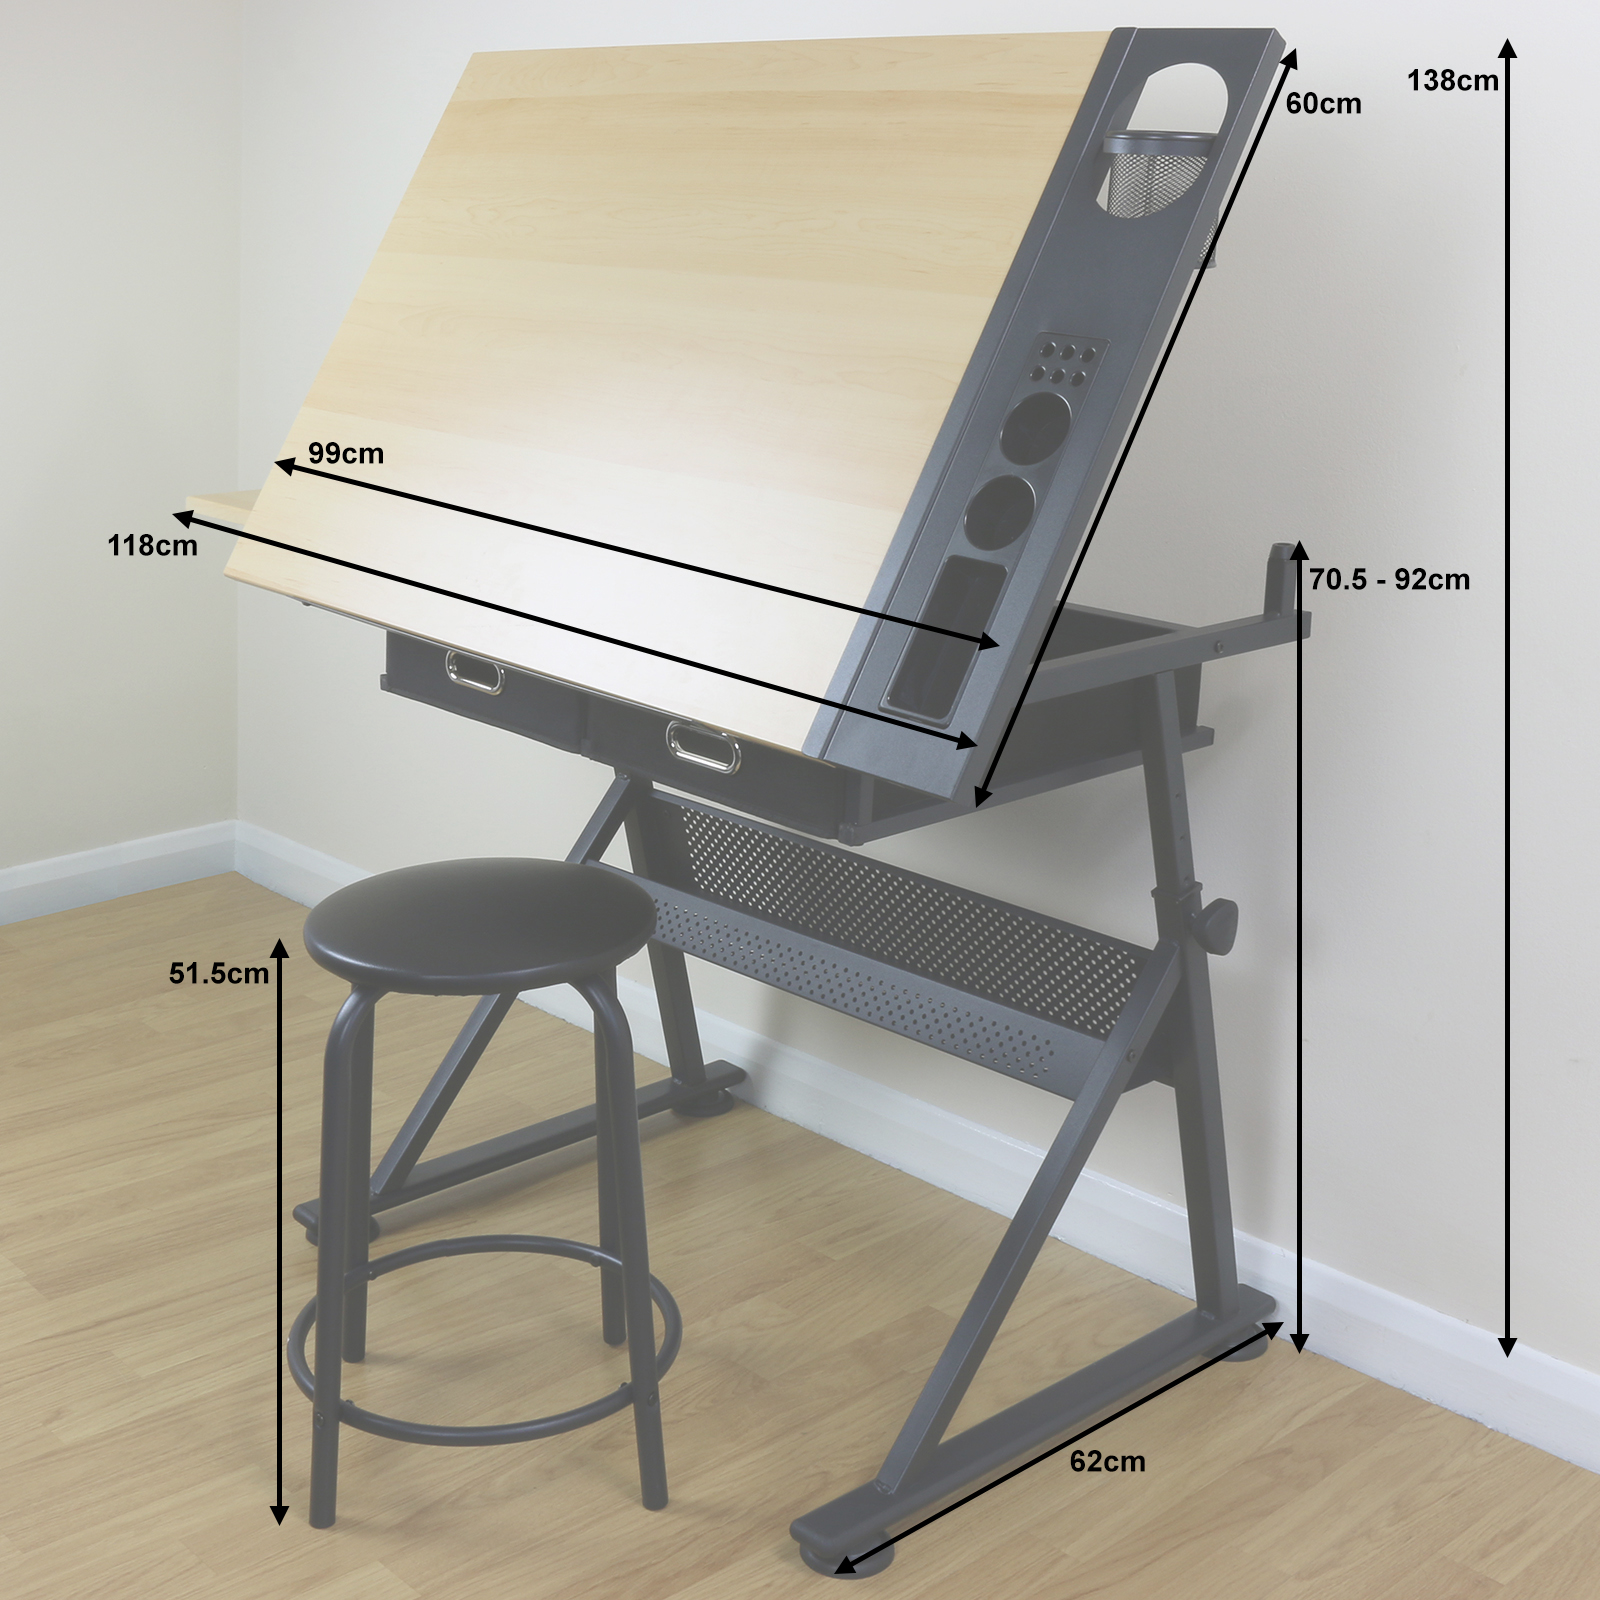 drafting table chair height distressed leather desk adjustable drawing board with stool craft